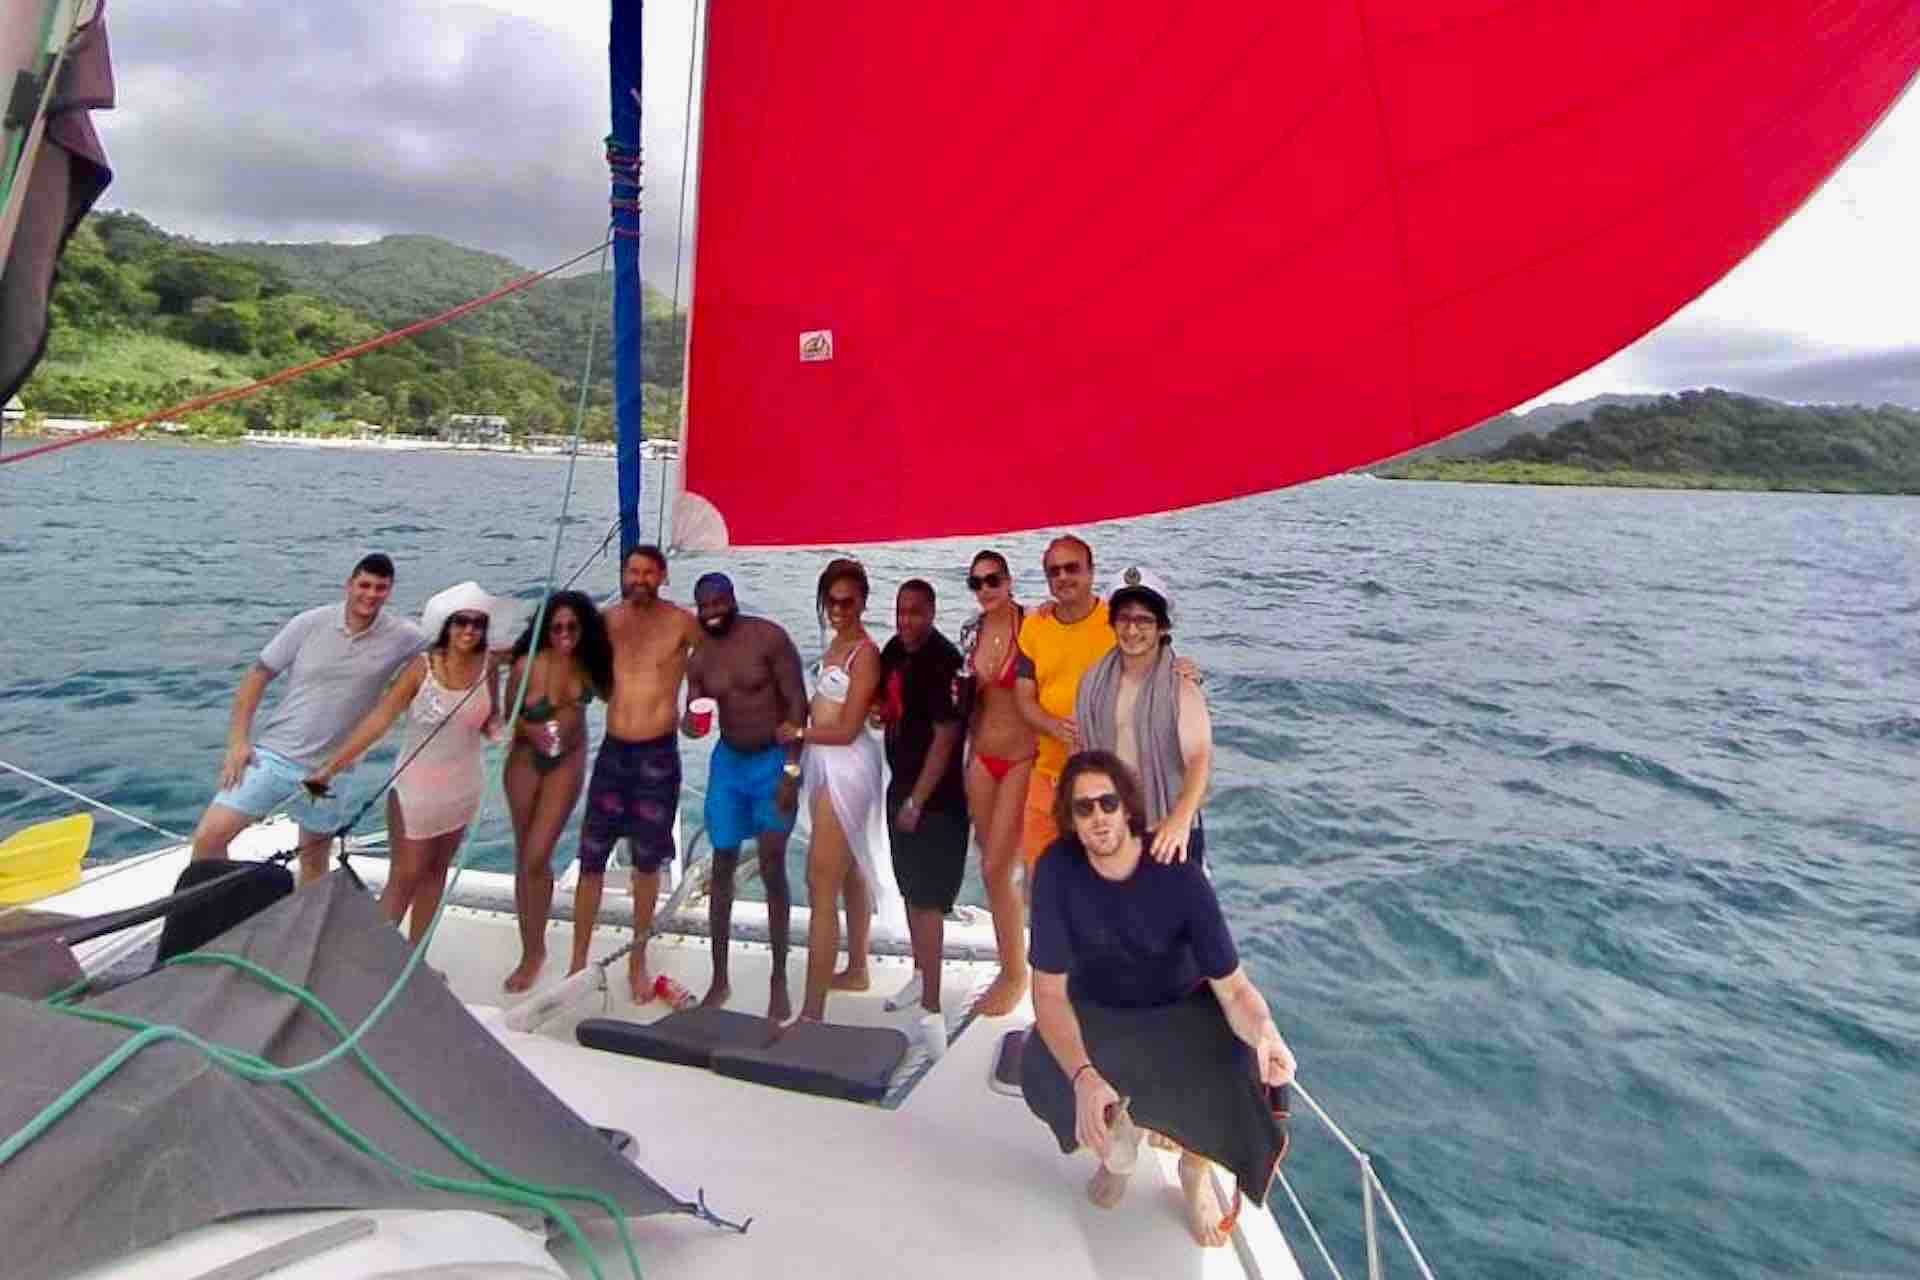 Panama Caribbean tour group photo with red sail